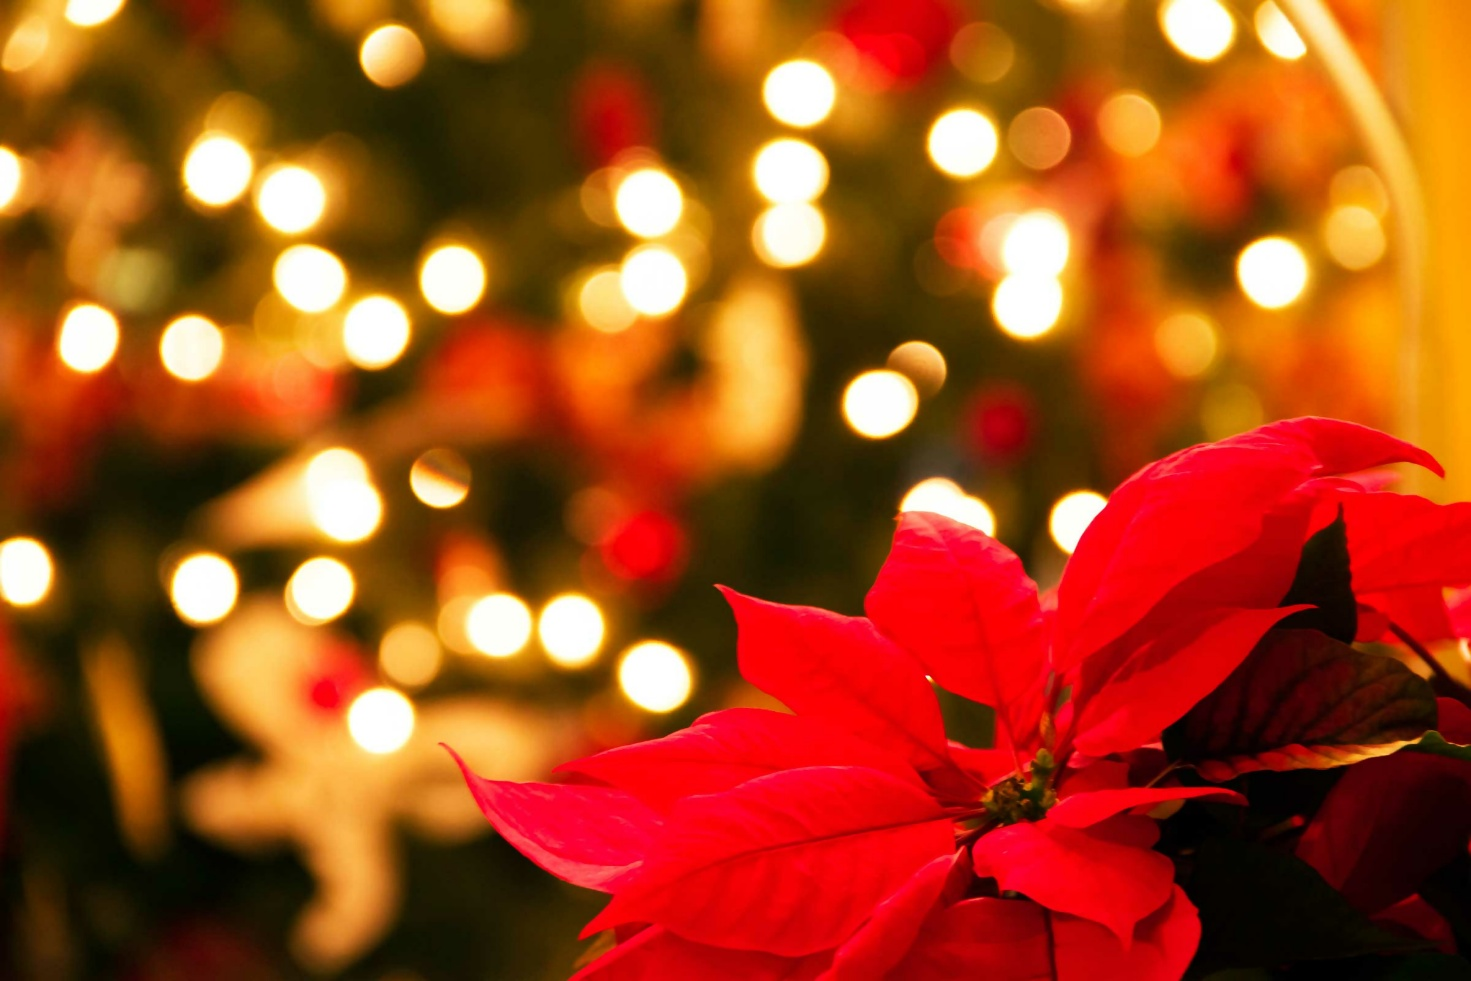 Poinsettias are toxic for pets